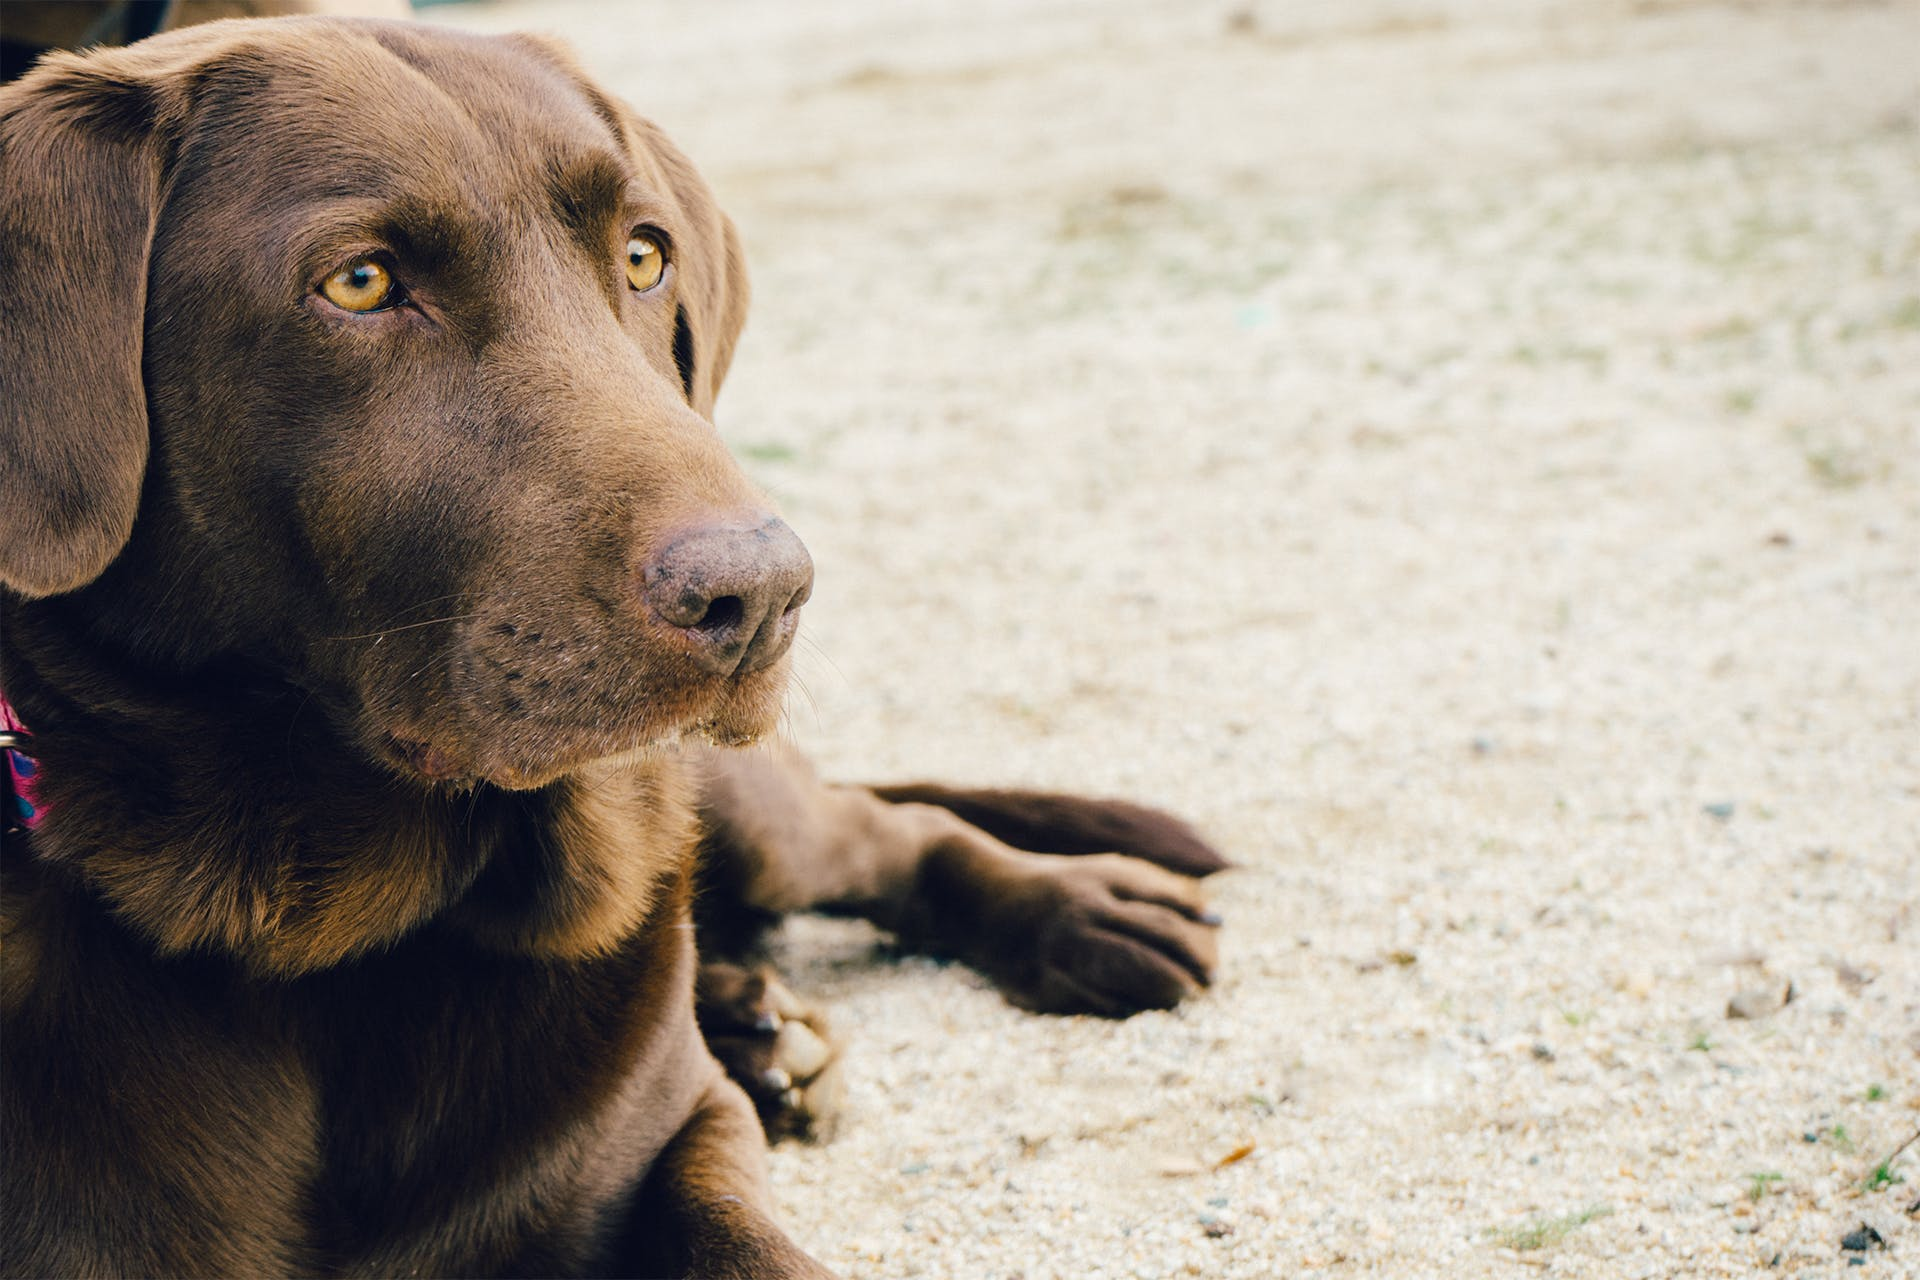 Focus Photography of Adult Chocolate Labrador Retriever